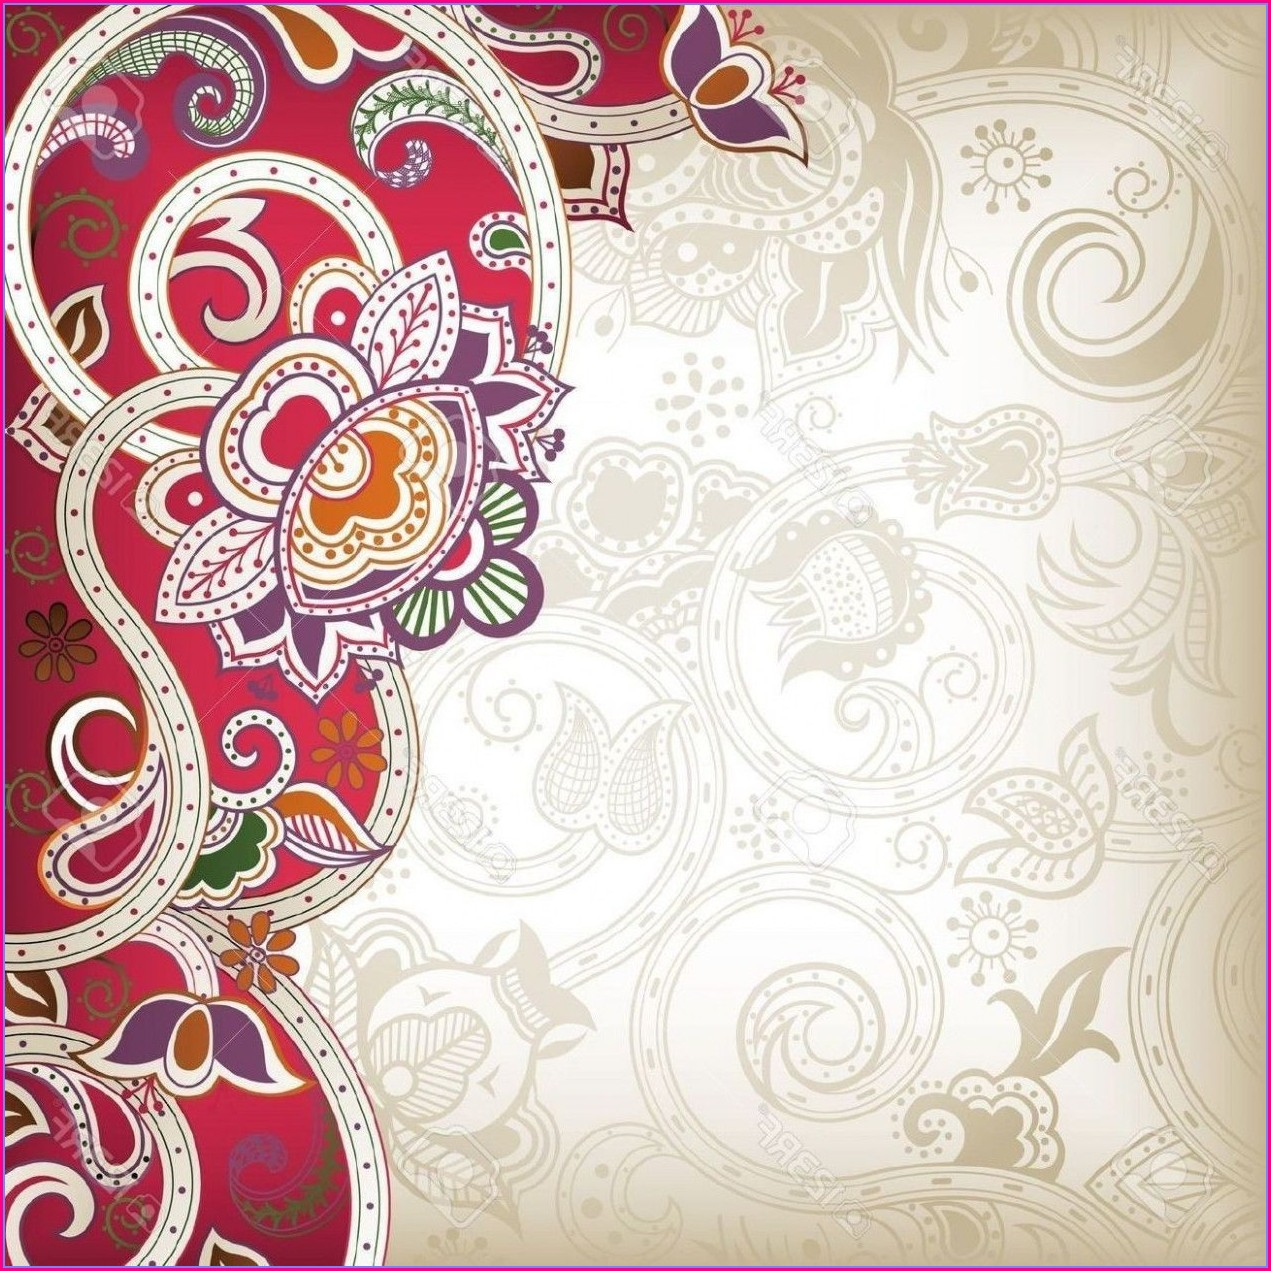 Blank Hindu Wedding Invitation Card Design